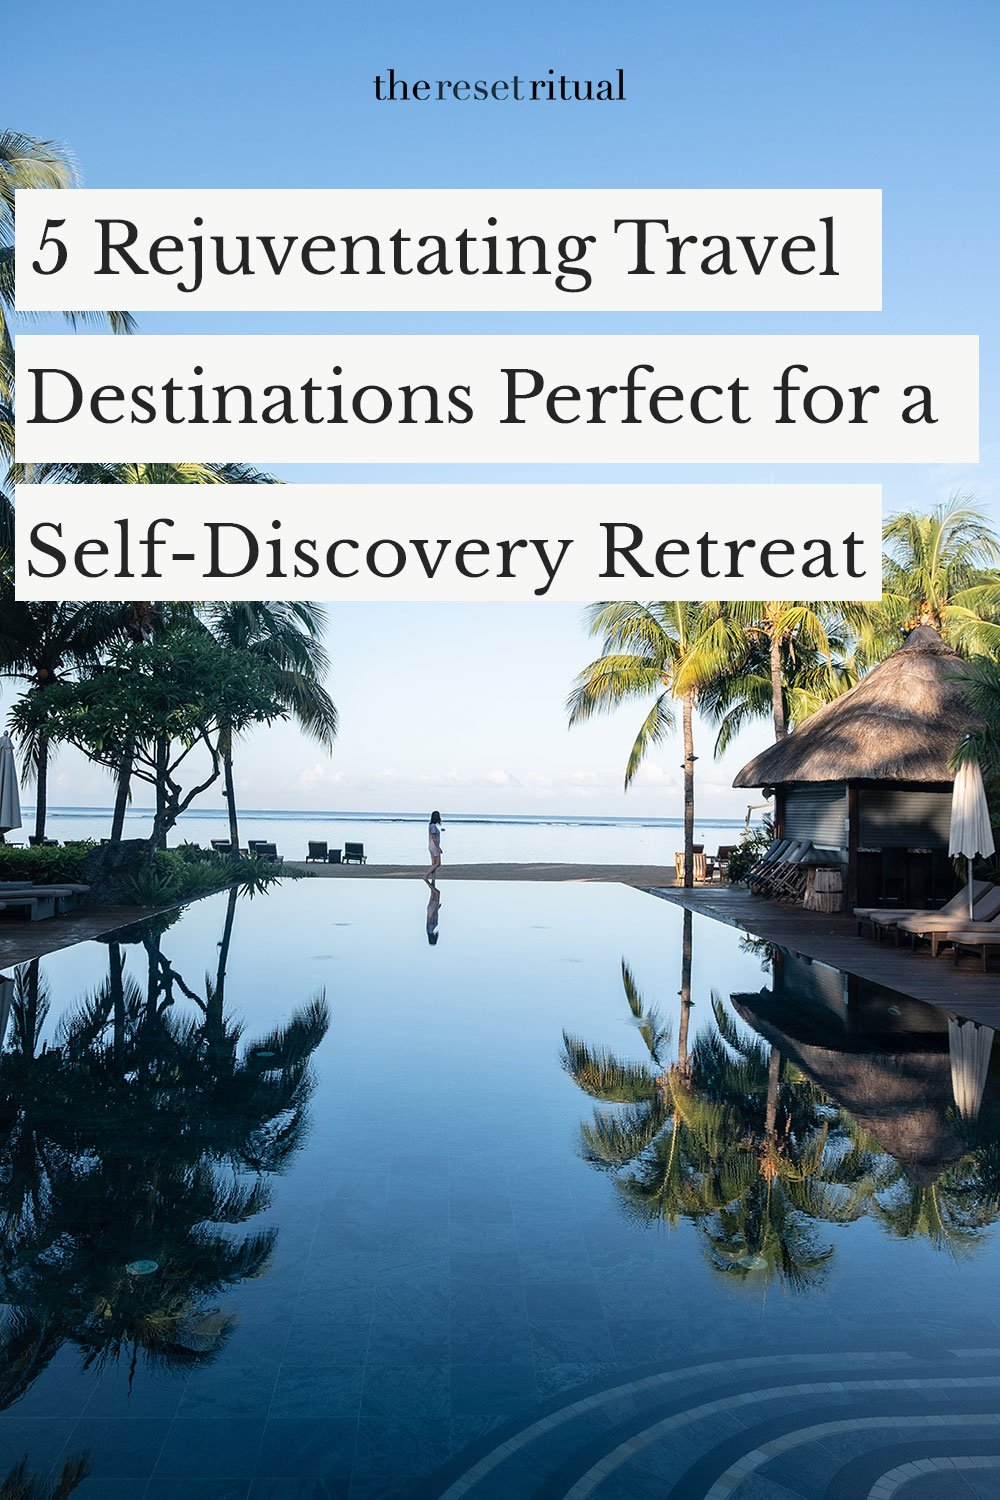 5 self-discovery travel destinations perfect for a personal retreat or wellness weekend getaway. #selfdiscovery #retreats #wellnesstravel